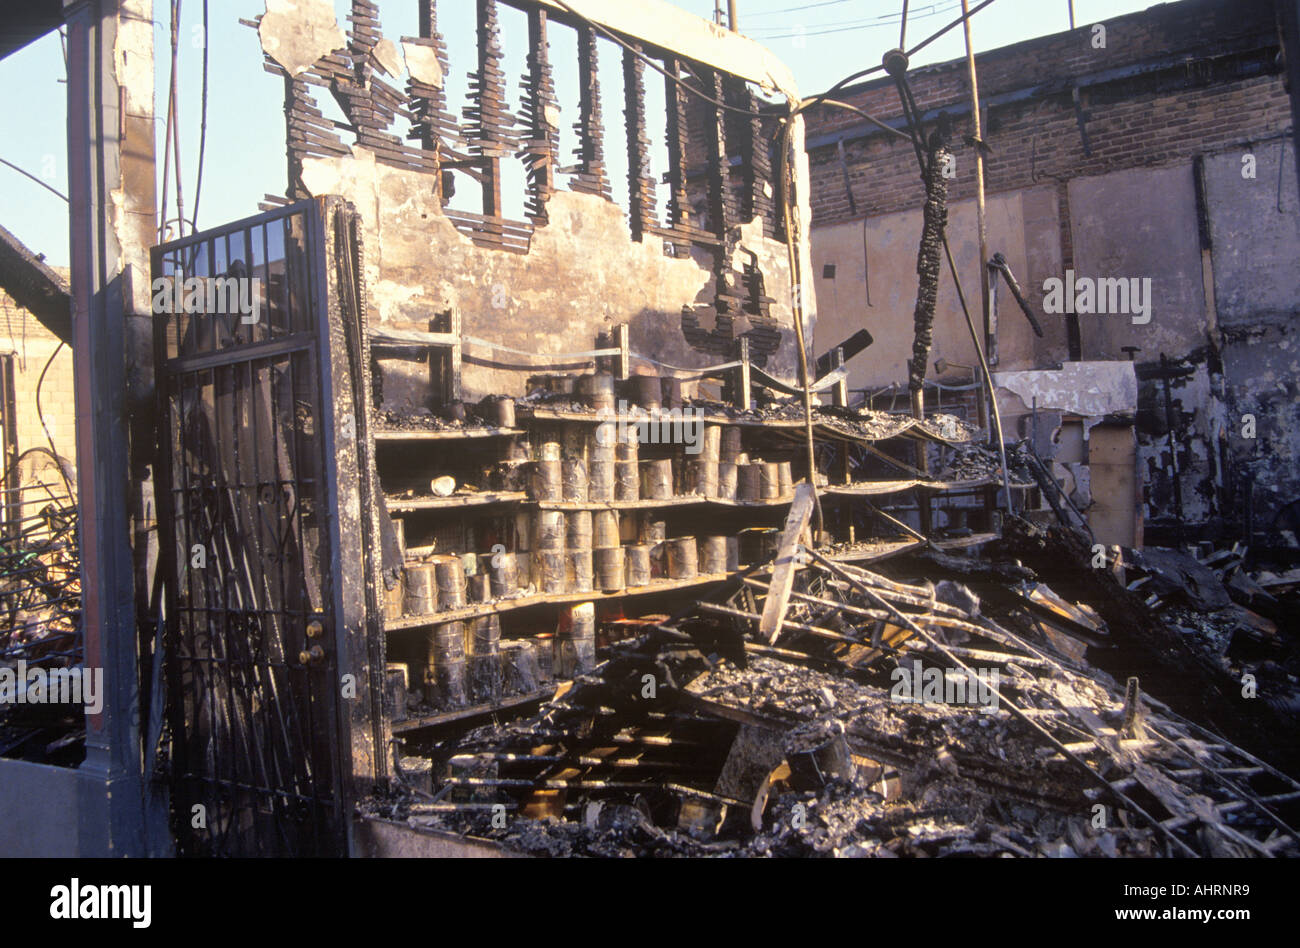 Hardware store burned out during 1992 riots South Central Los Angeles California - Stock Image